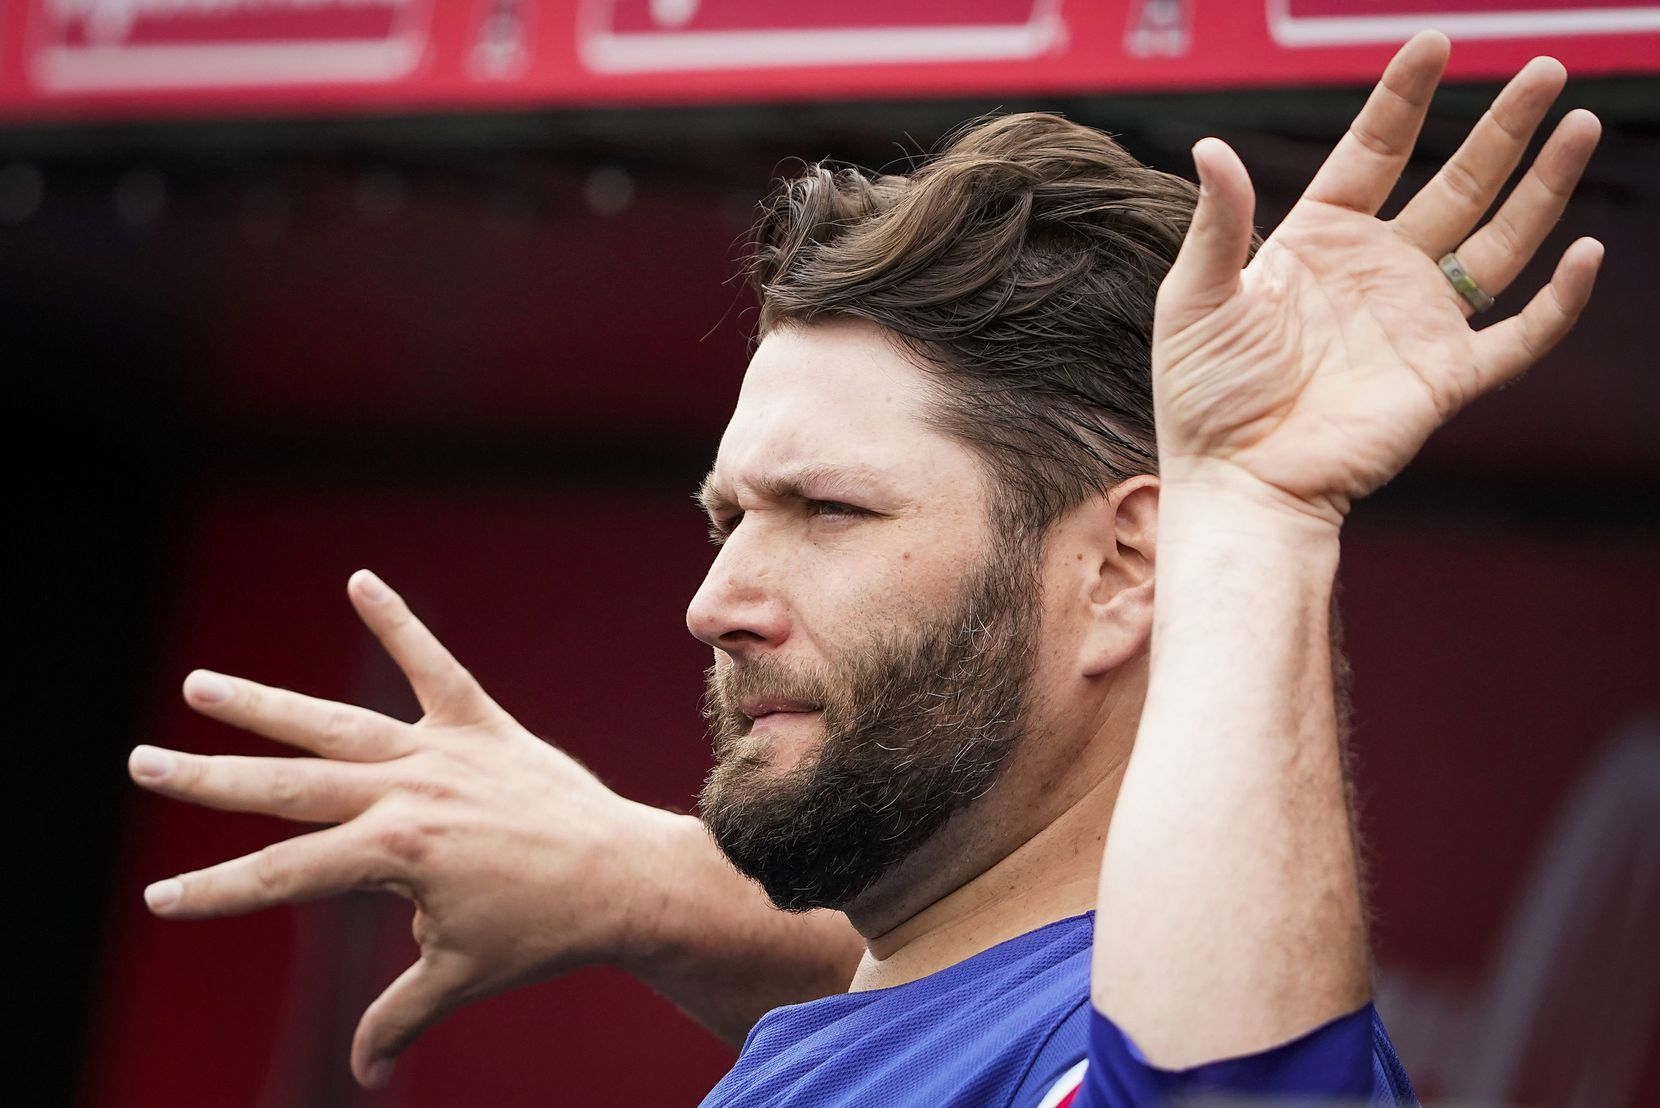 Texas Rangers pitcher Lance Lynn stretches in the dugout before a spring training game against the Los Angeles Angels at Tempe Diablo Stadium on Friday, Feb. 28, 2020, in Tempe, Ariz.